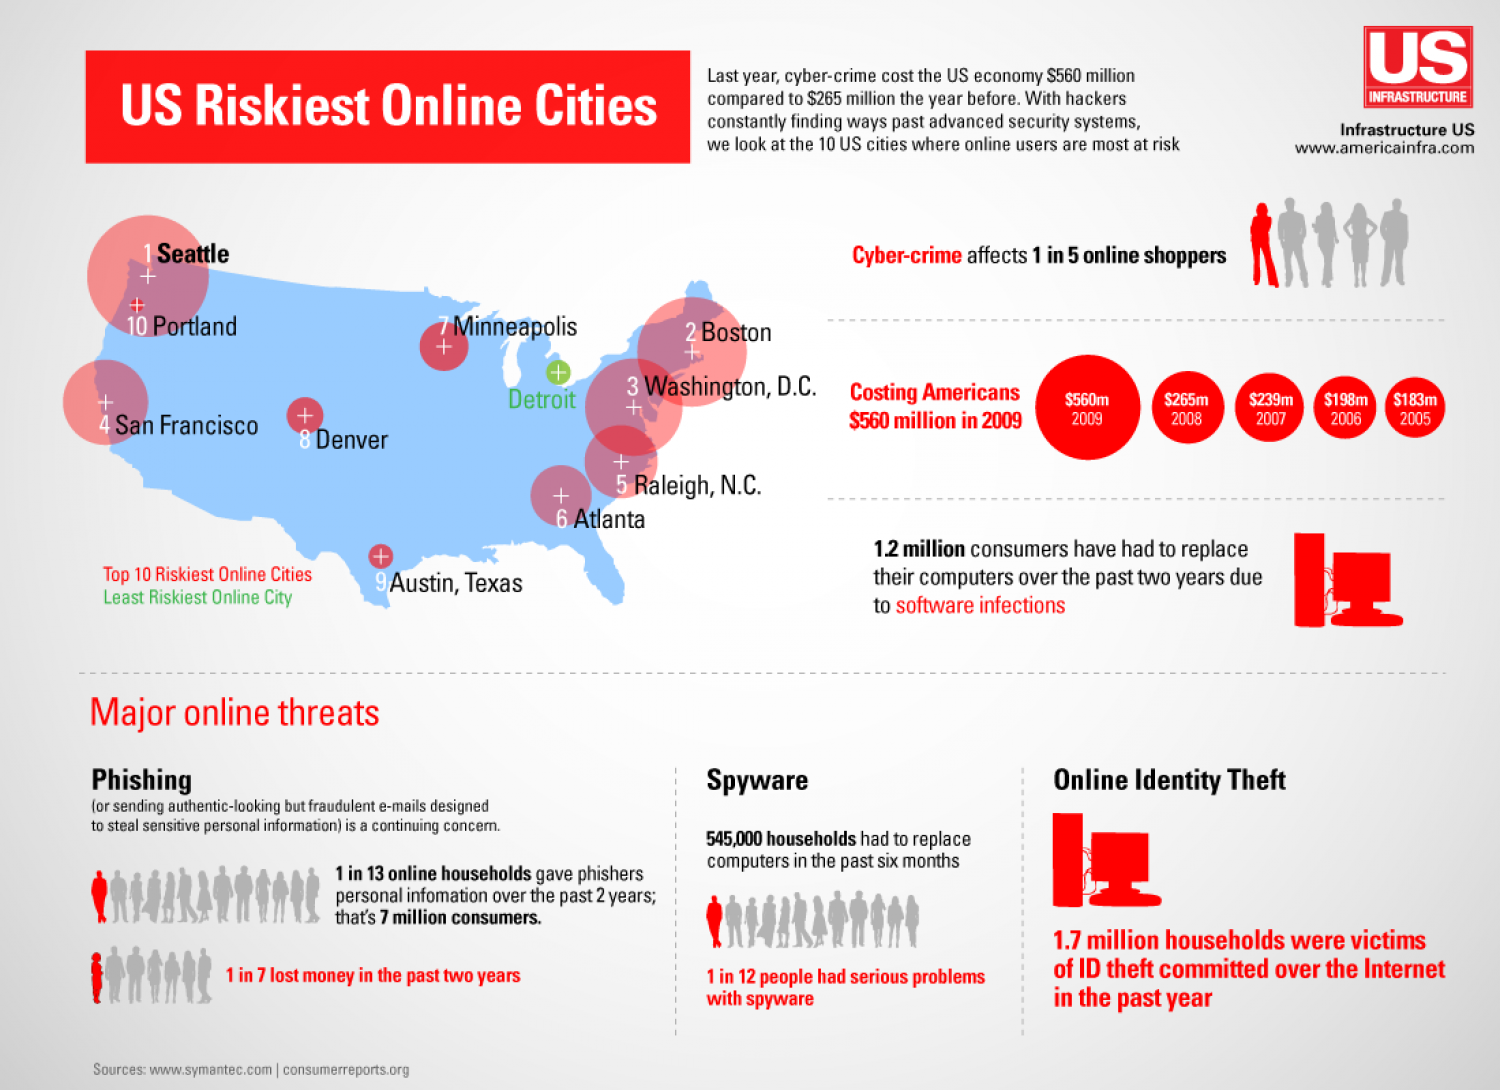 The Worst Cities for Online Crimes Infographic